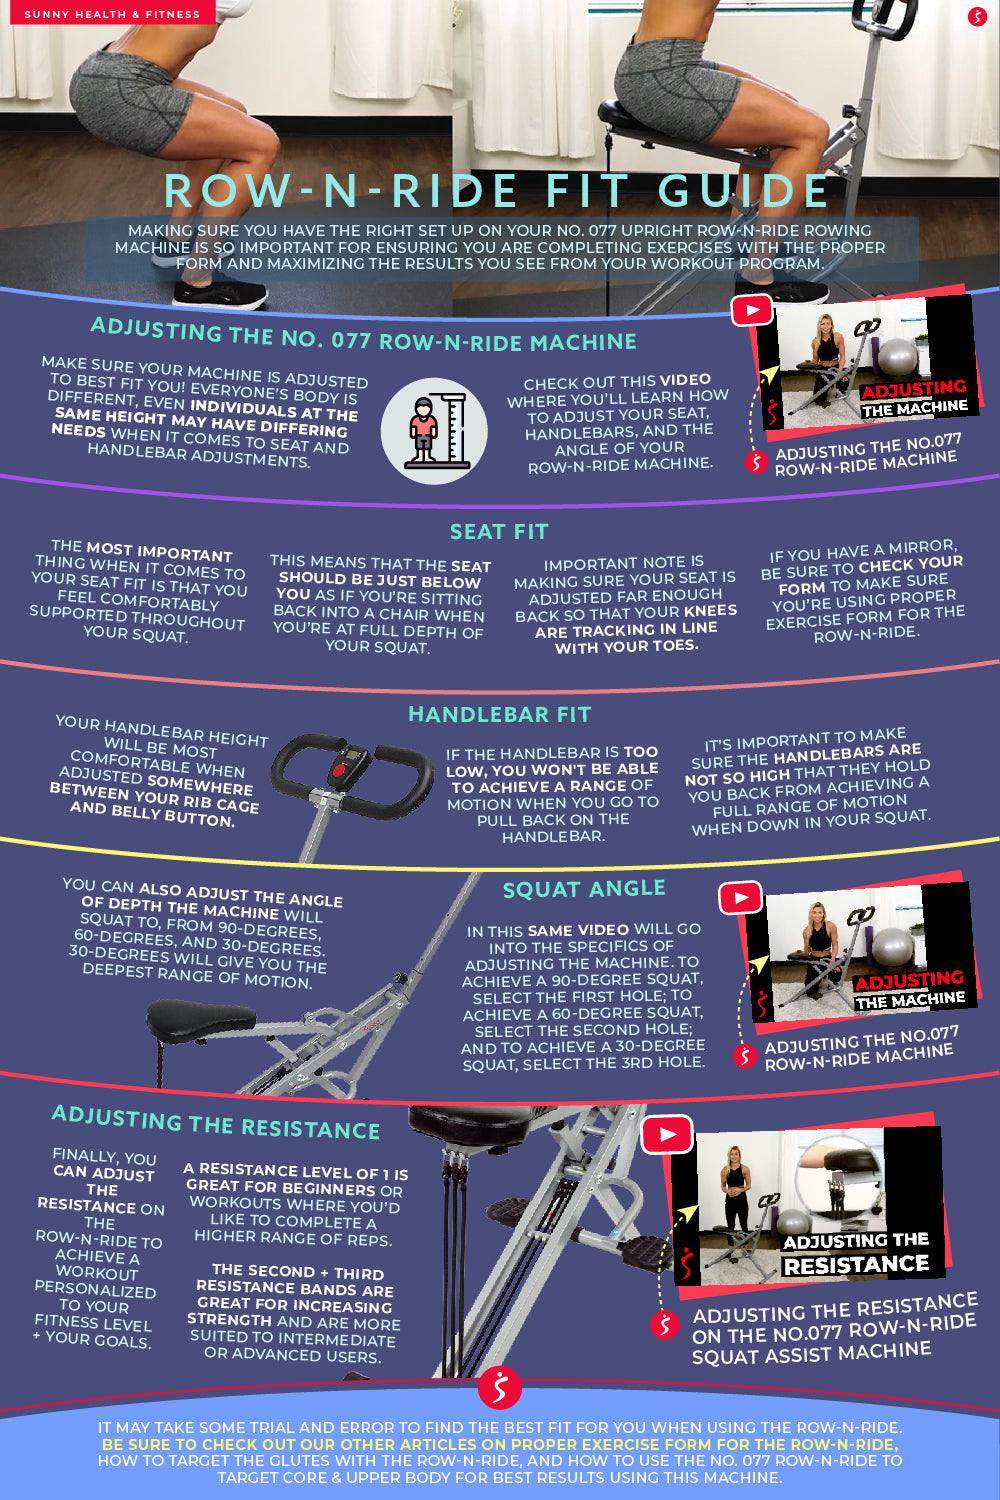 Row-N-Ride Fit Guide Infographic